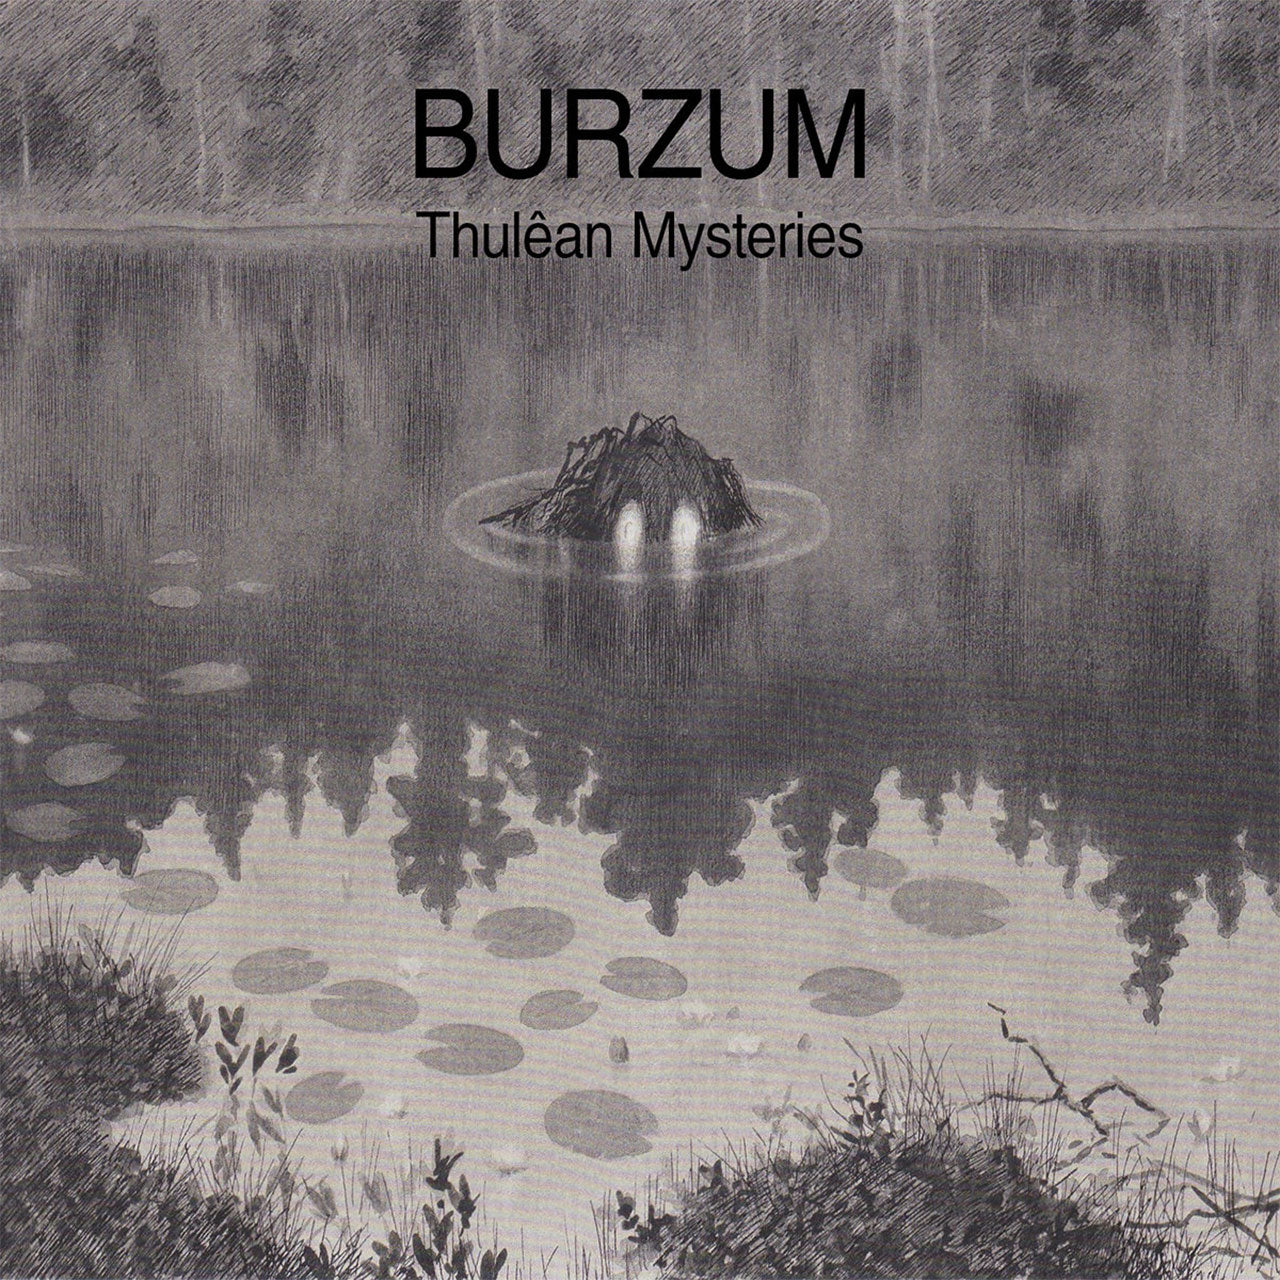 Burzum - Thulean Mysteries (Clear Edition) (2LP - PRE-ORDER: 13/3/20)